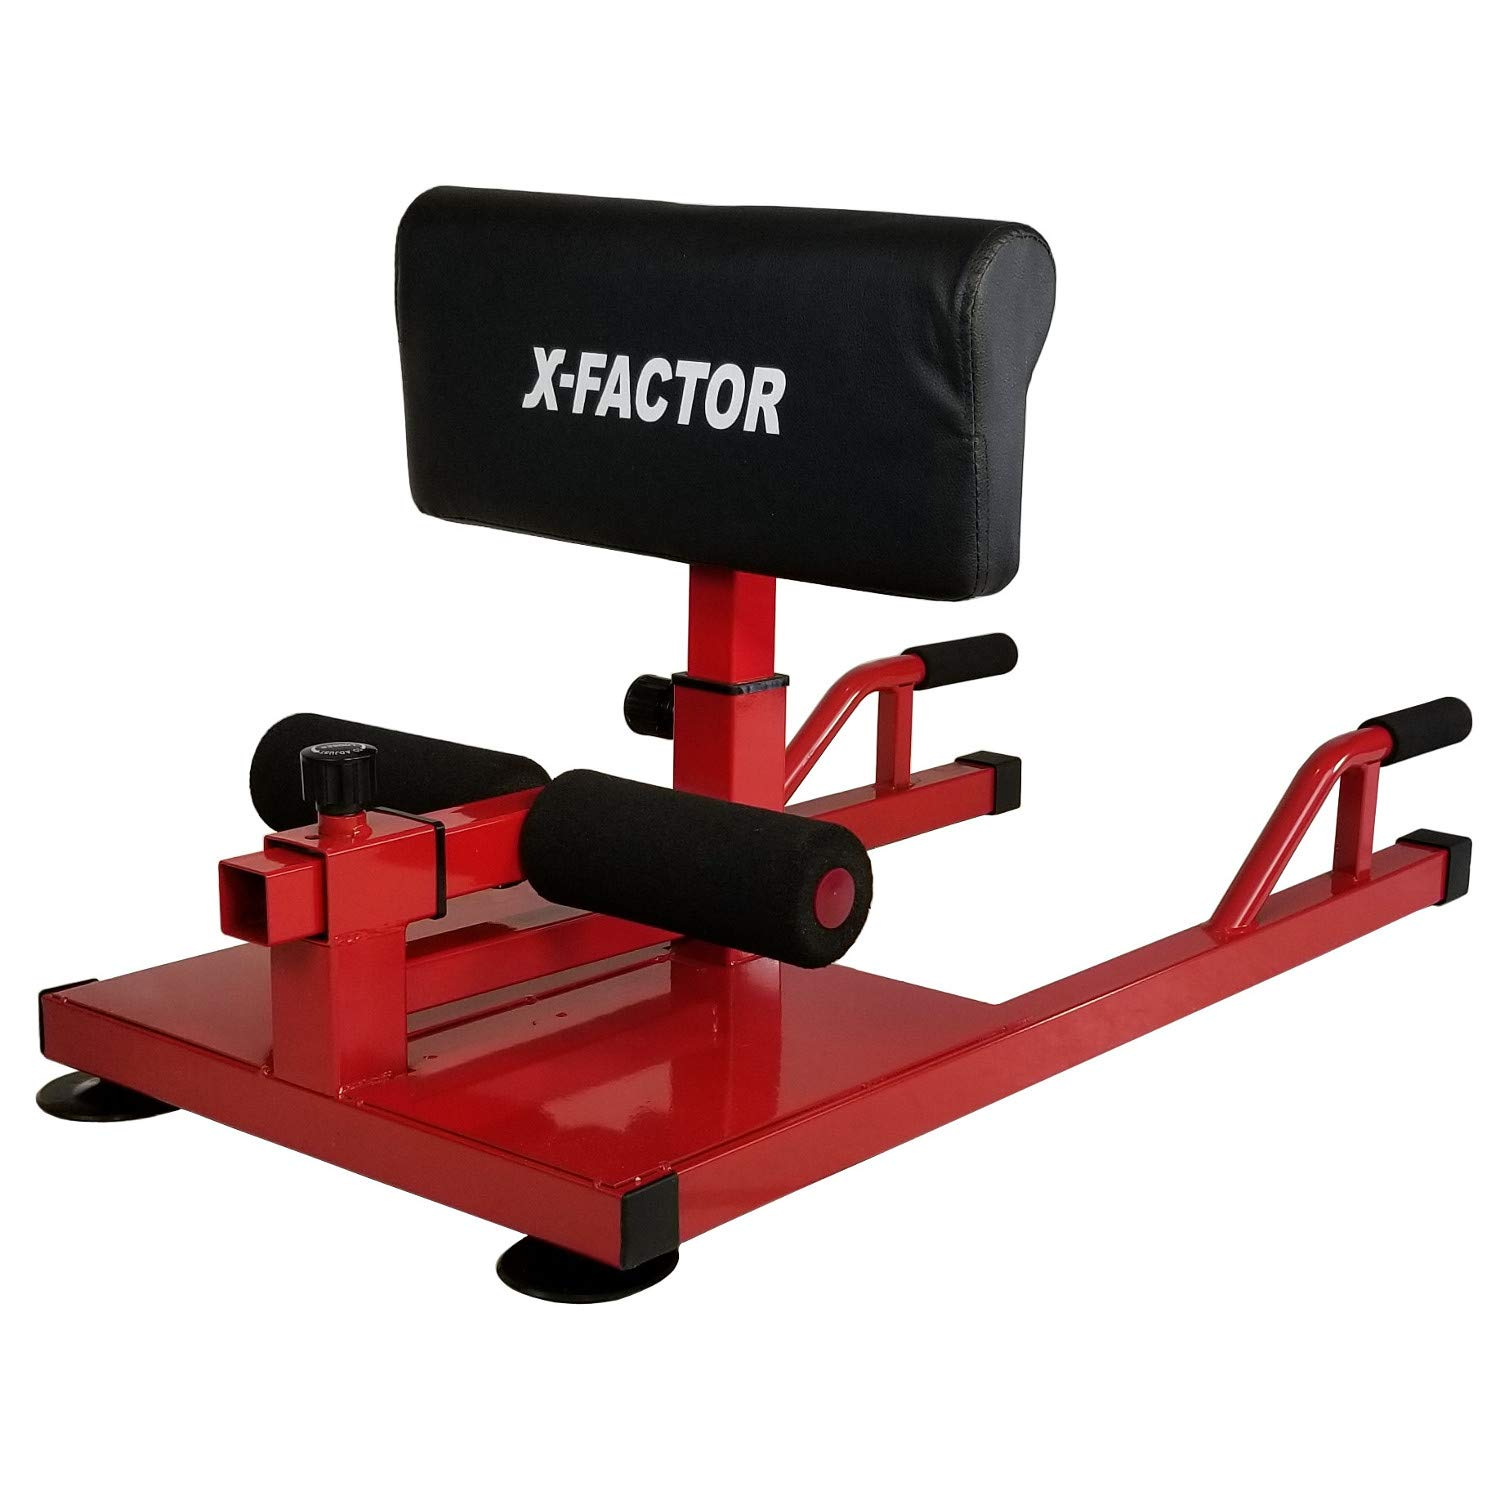 X-Factor Sissy Squat 3-in-1 Heavy Duty Sit Up Push Up Squat Home Workout Gym Machine